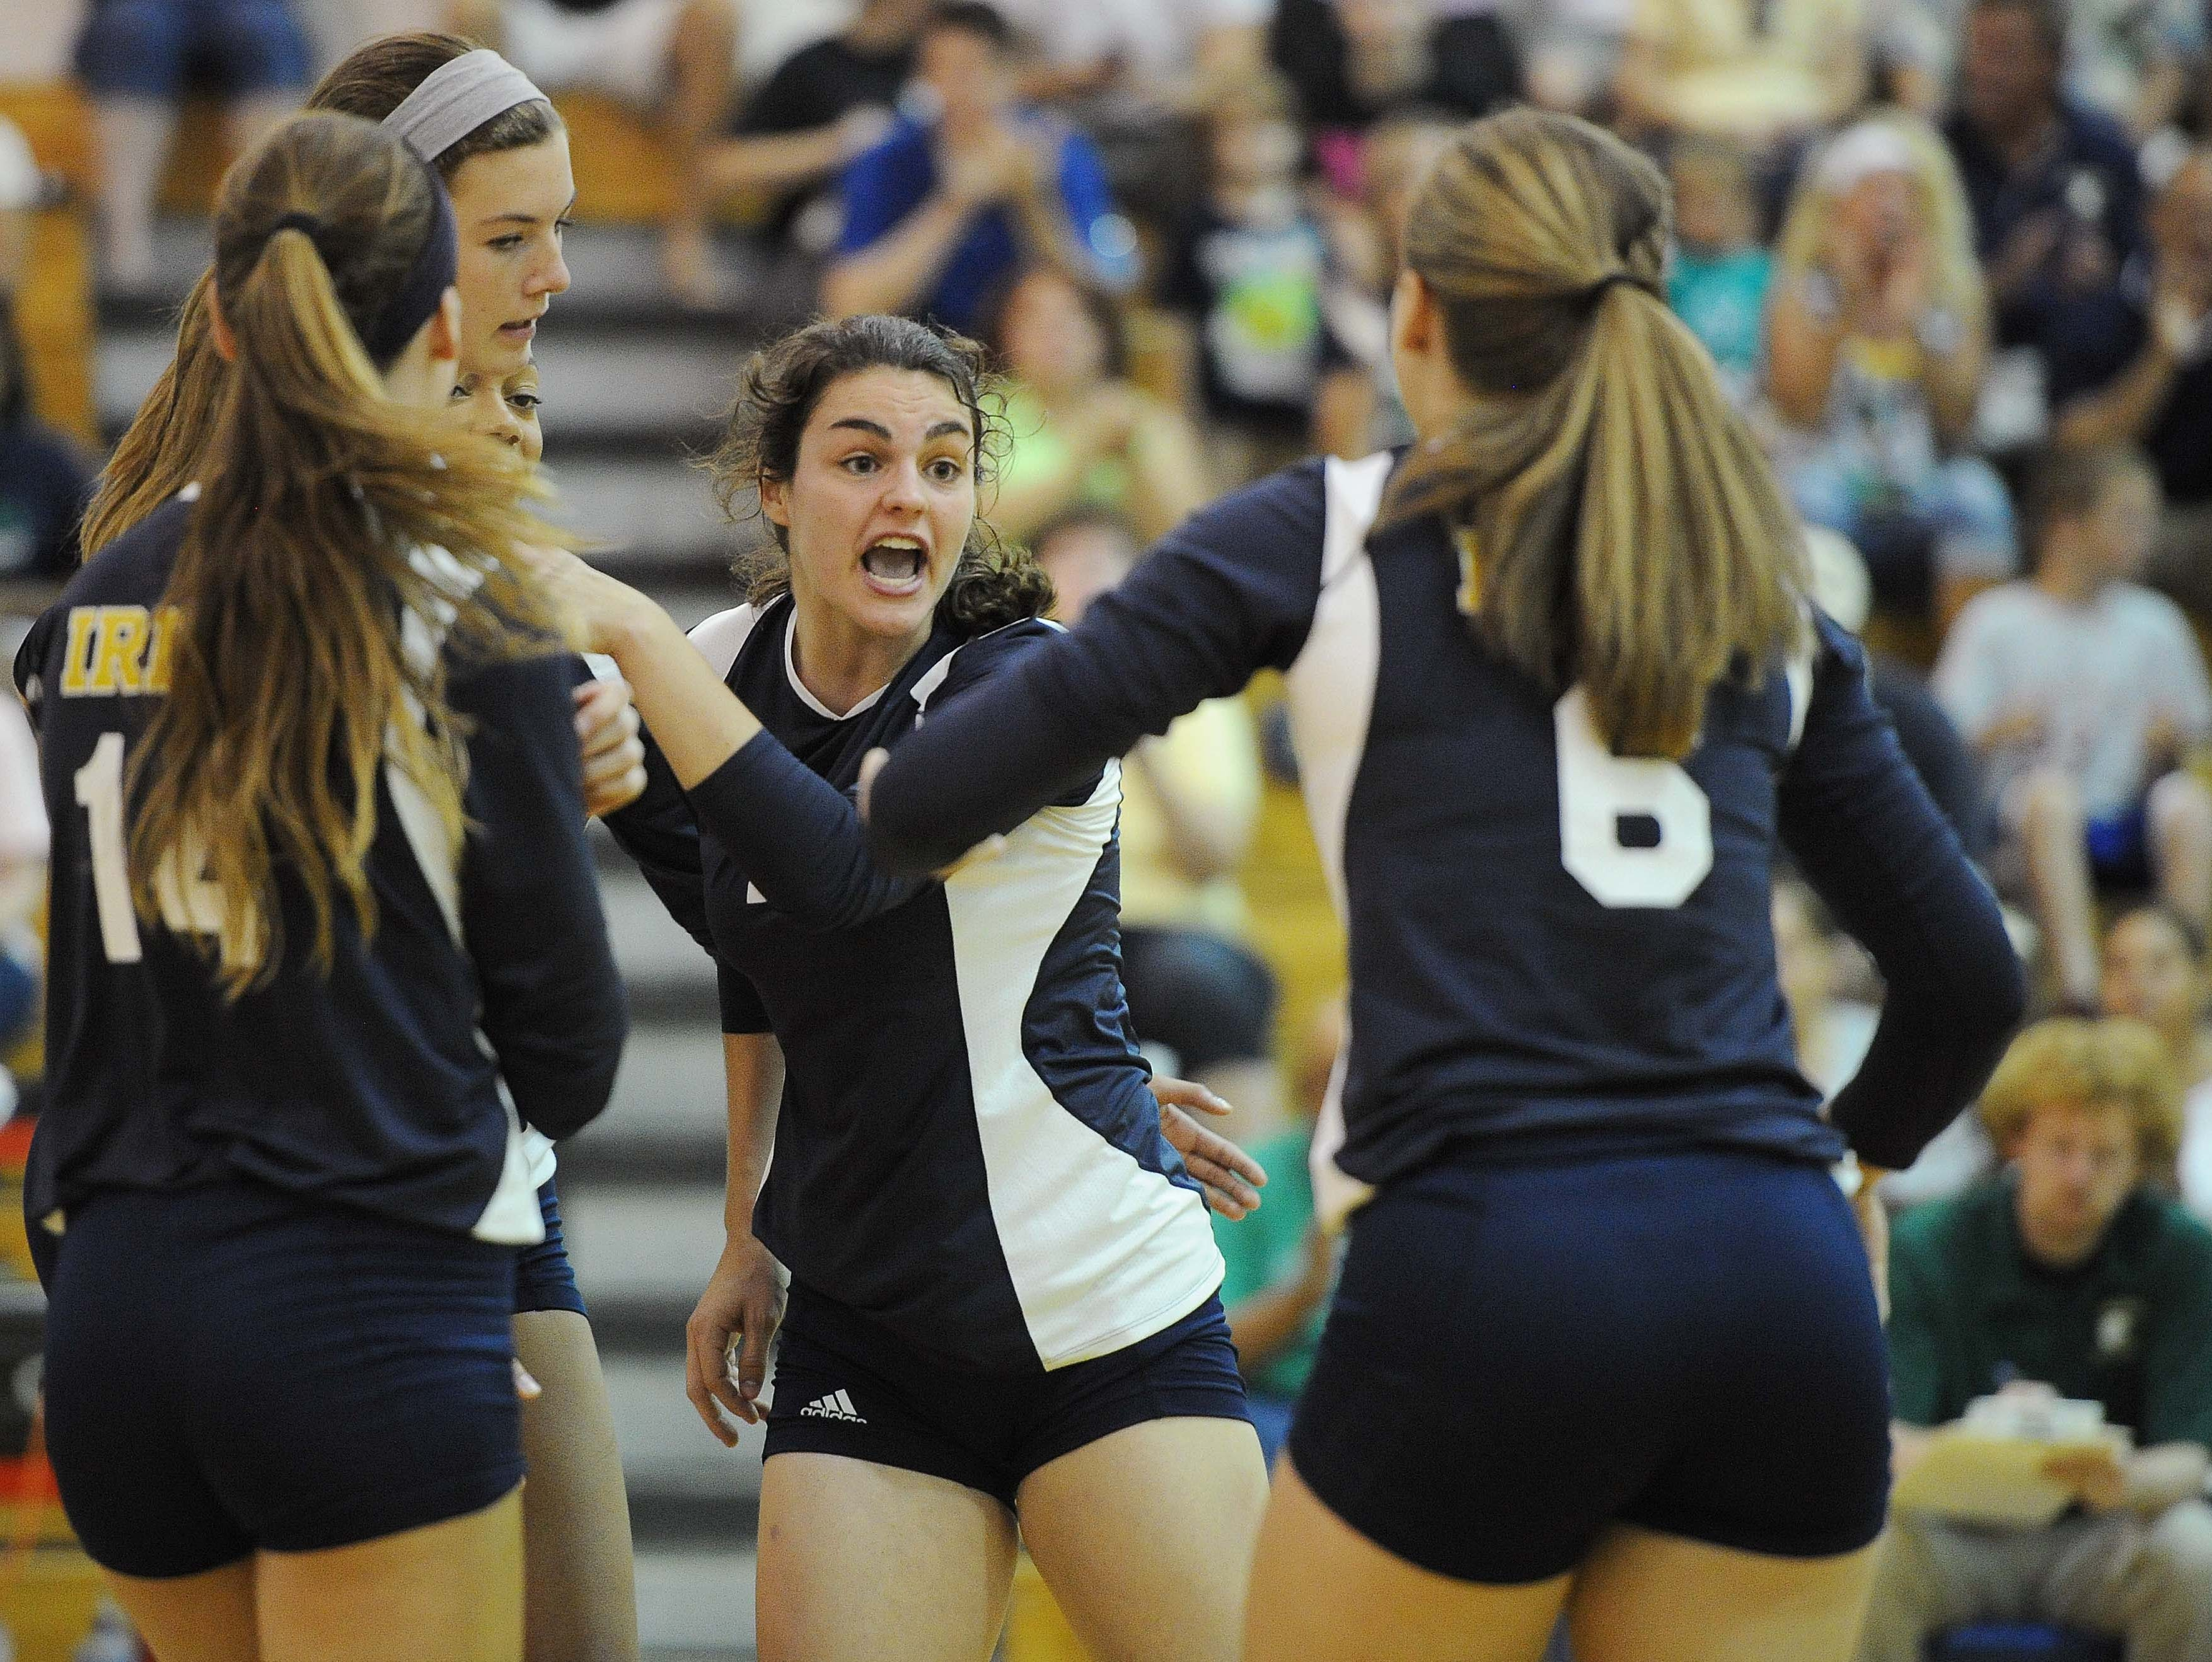 The Cathedral team talks after winning a point. Cathedral hosted number one nationally ranked Assumption (KY) in girls high school volleyball Saturday August 24, 2013. Rob Goebel/The Star.